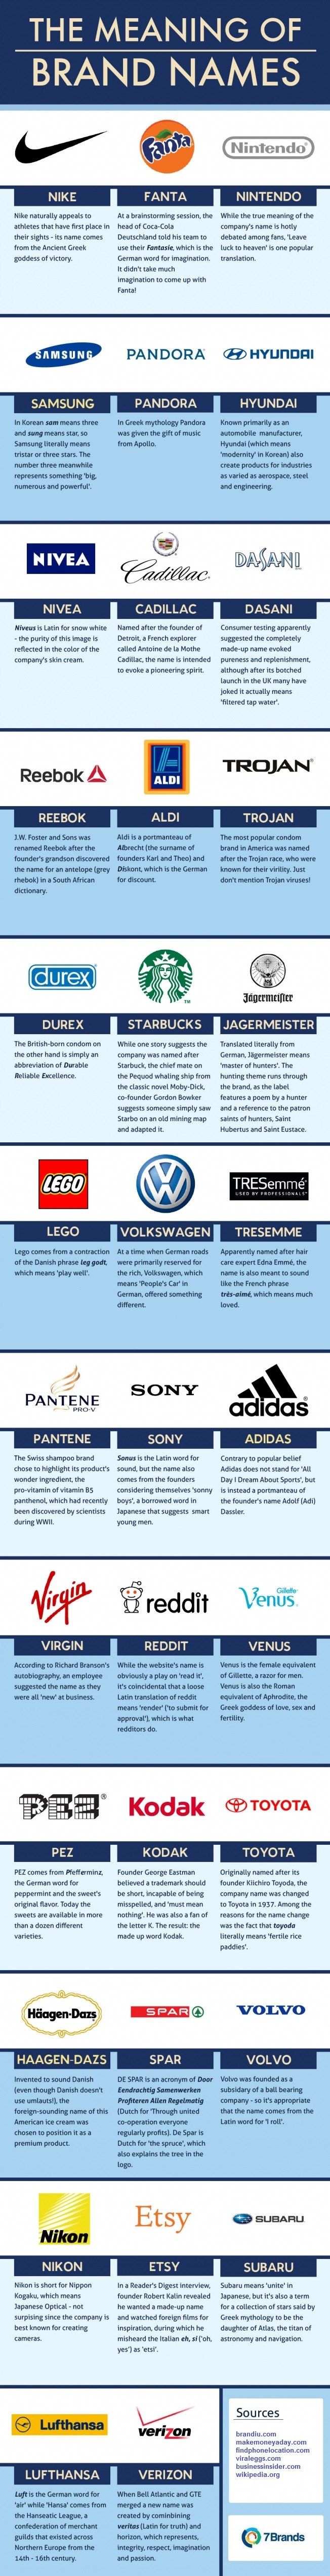 The Meaning Of 35 Famous Brands Names From Nike to Verizon